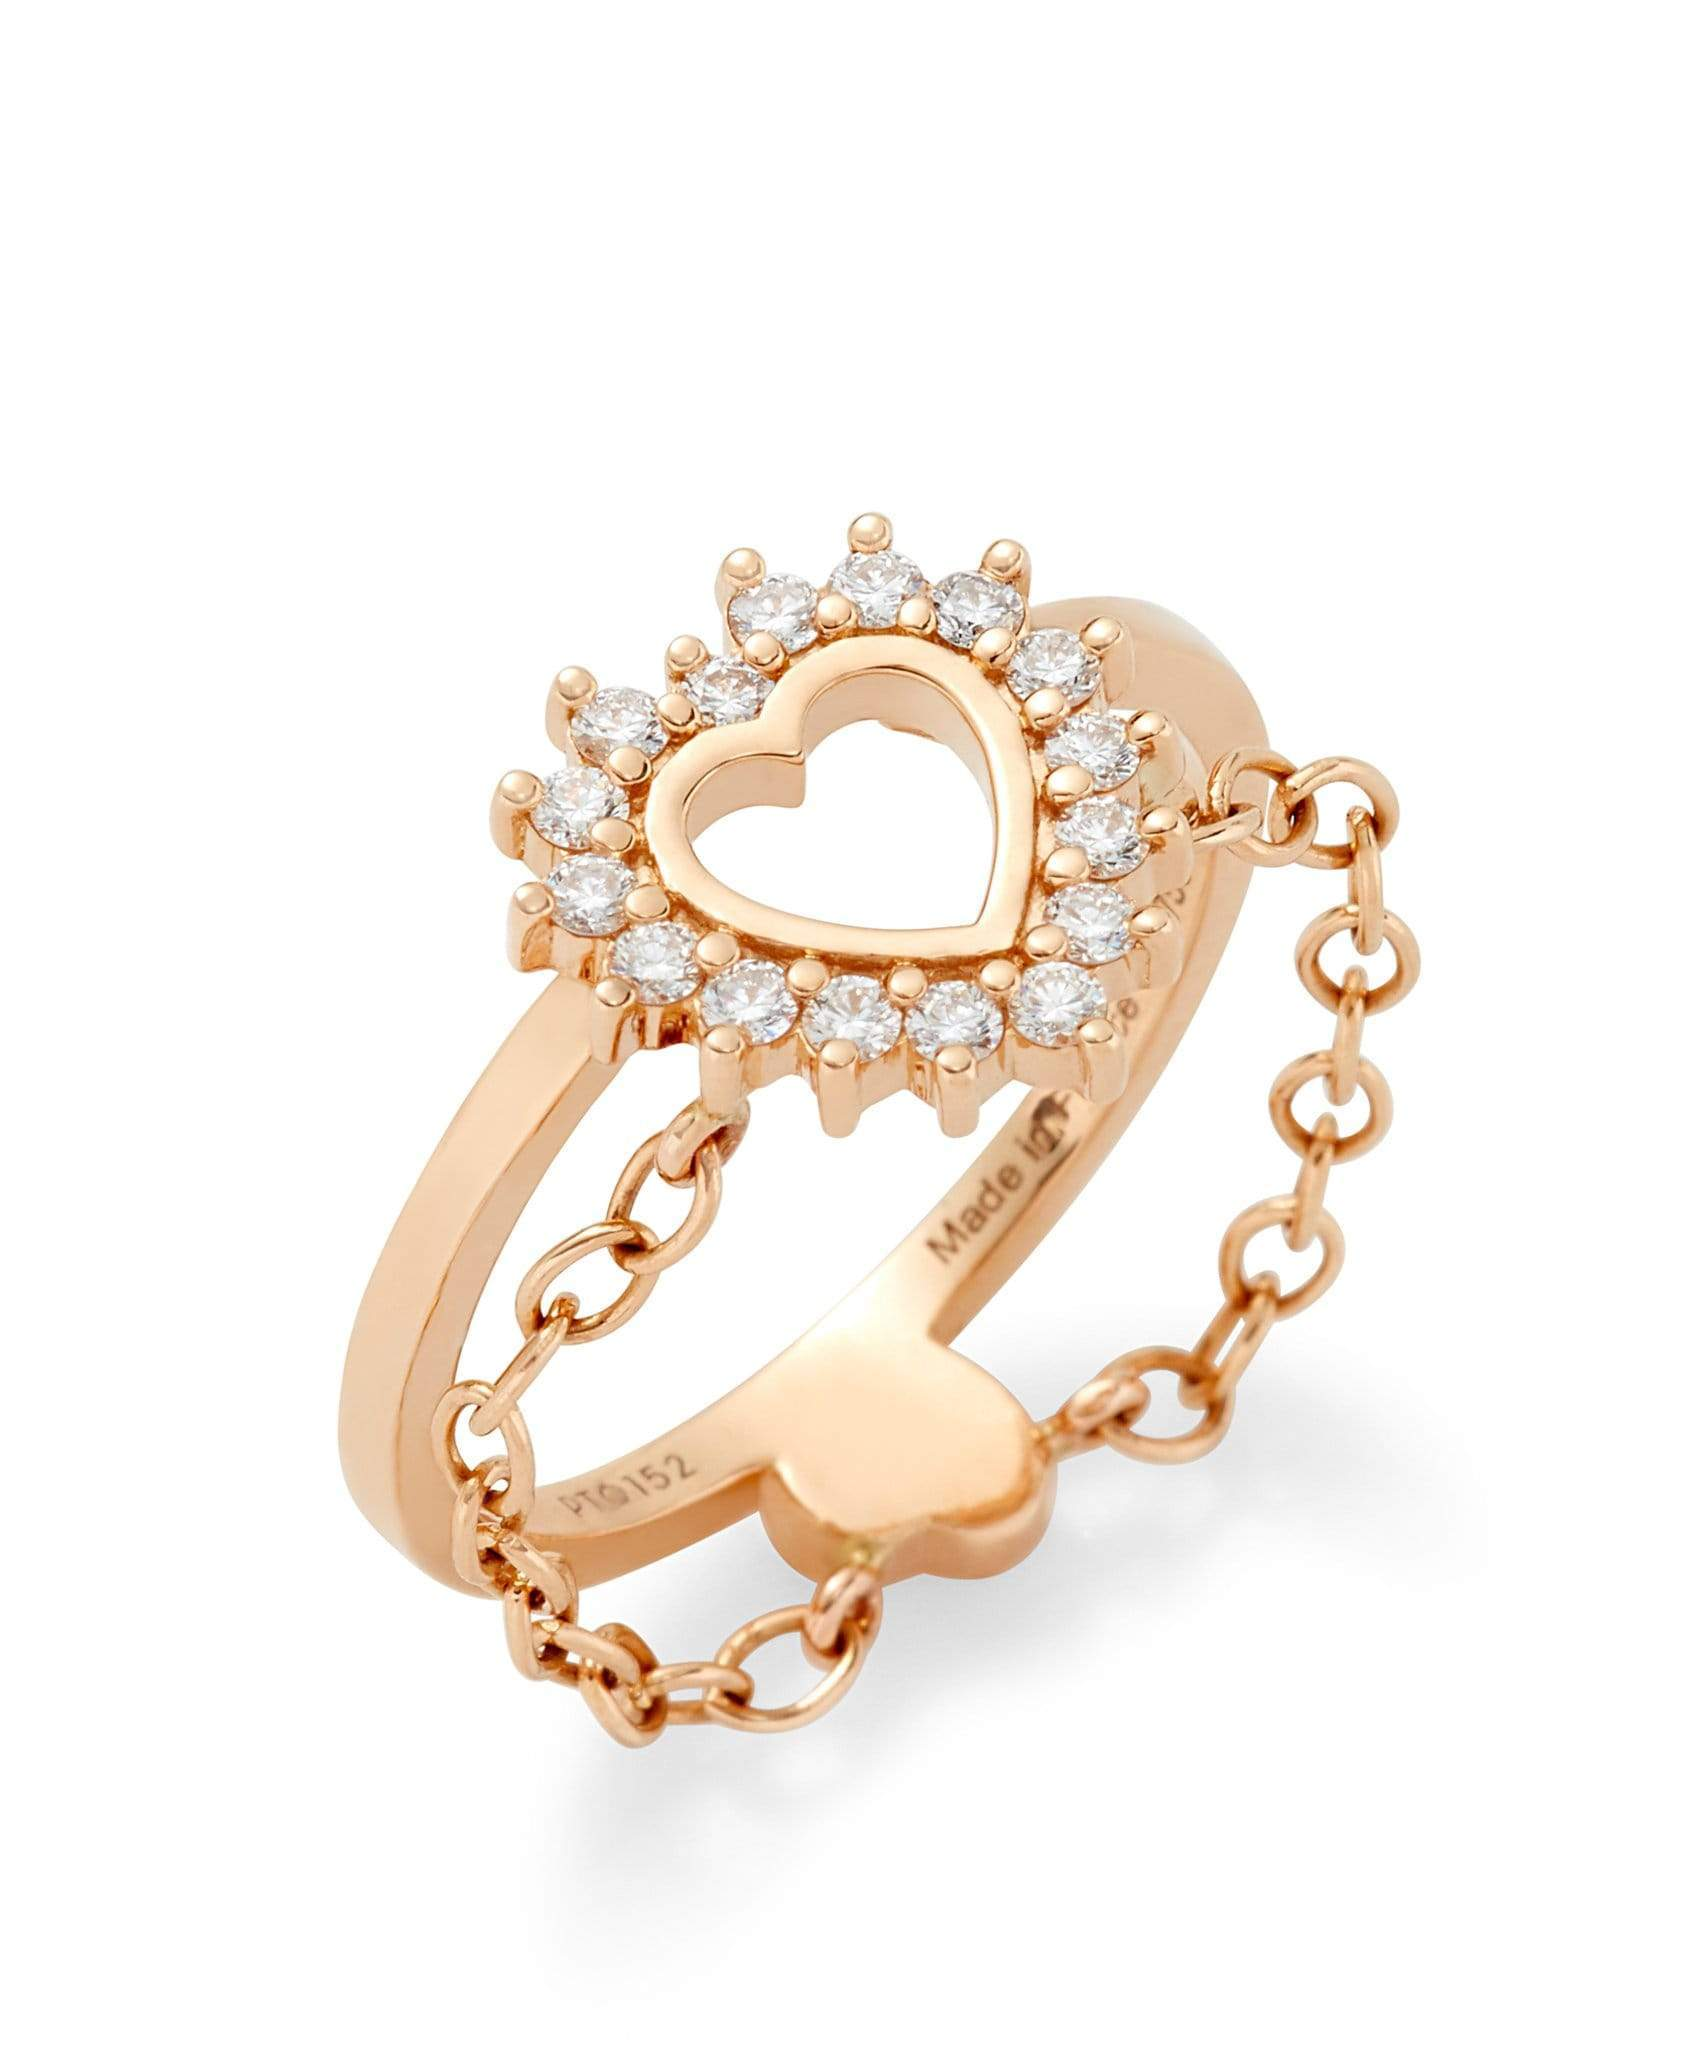 Medium Love Ring: Discover Luxury Fine Jewelry | Nouvel Heritage